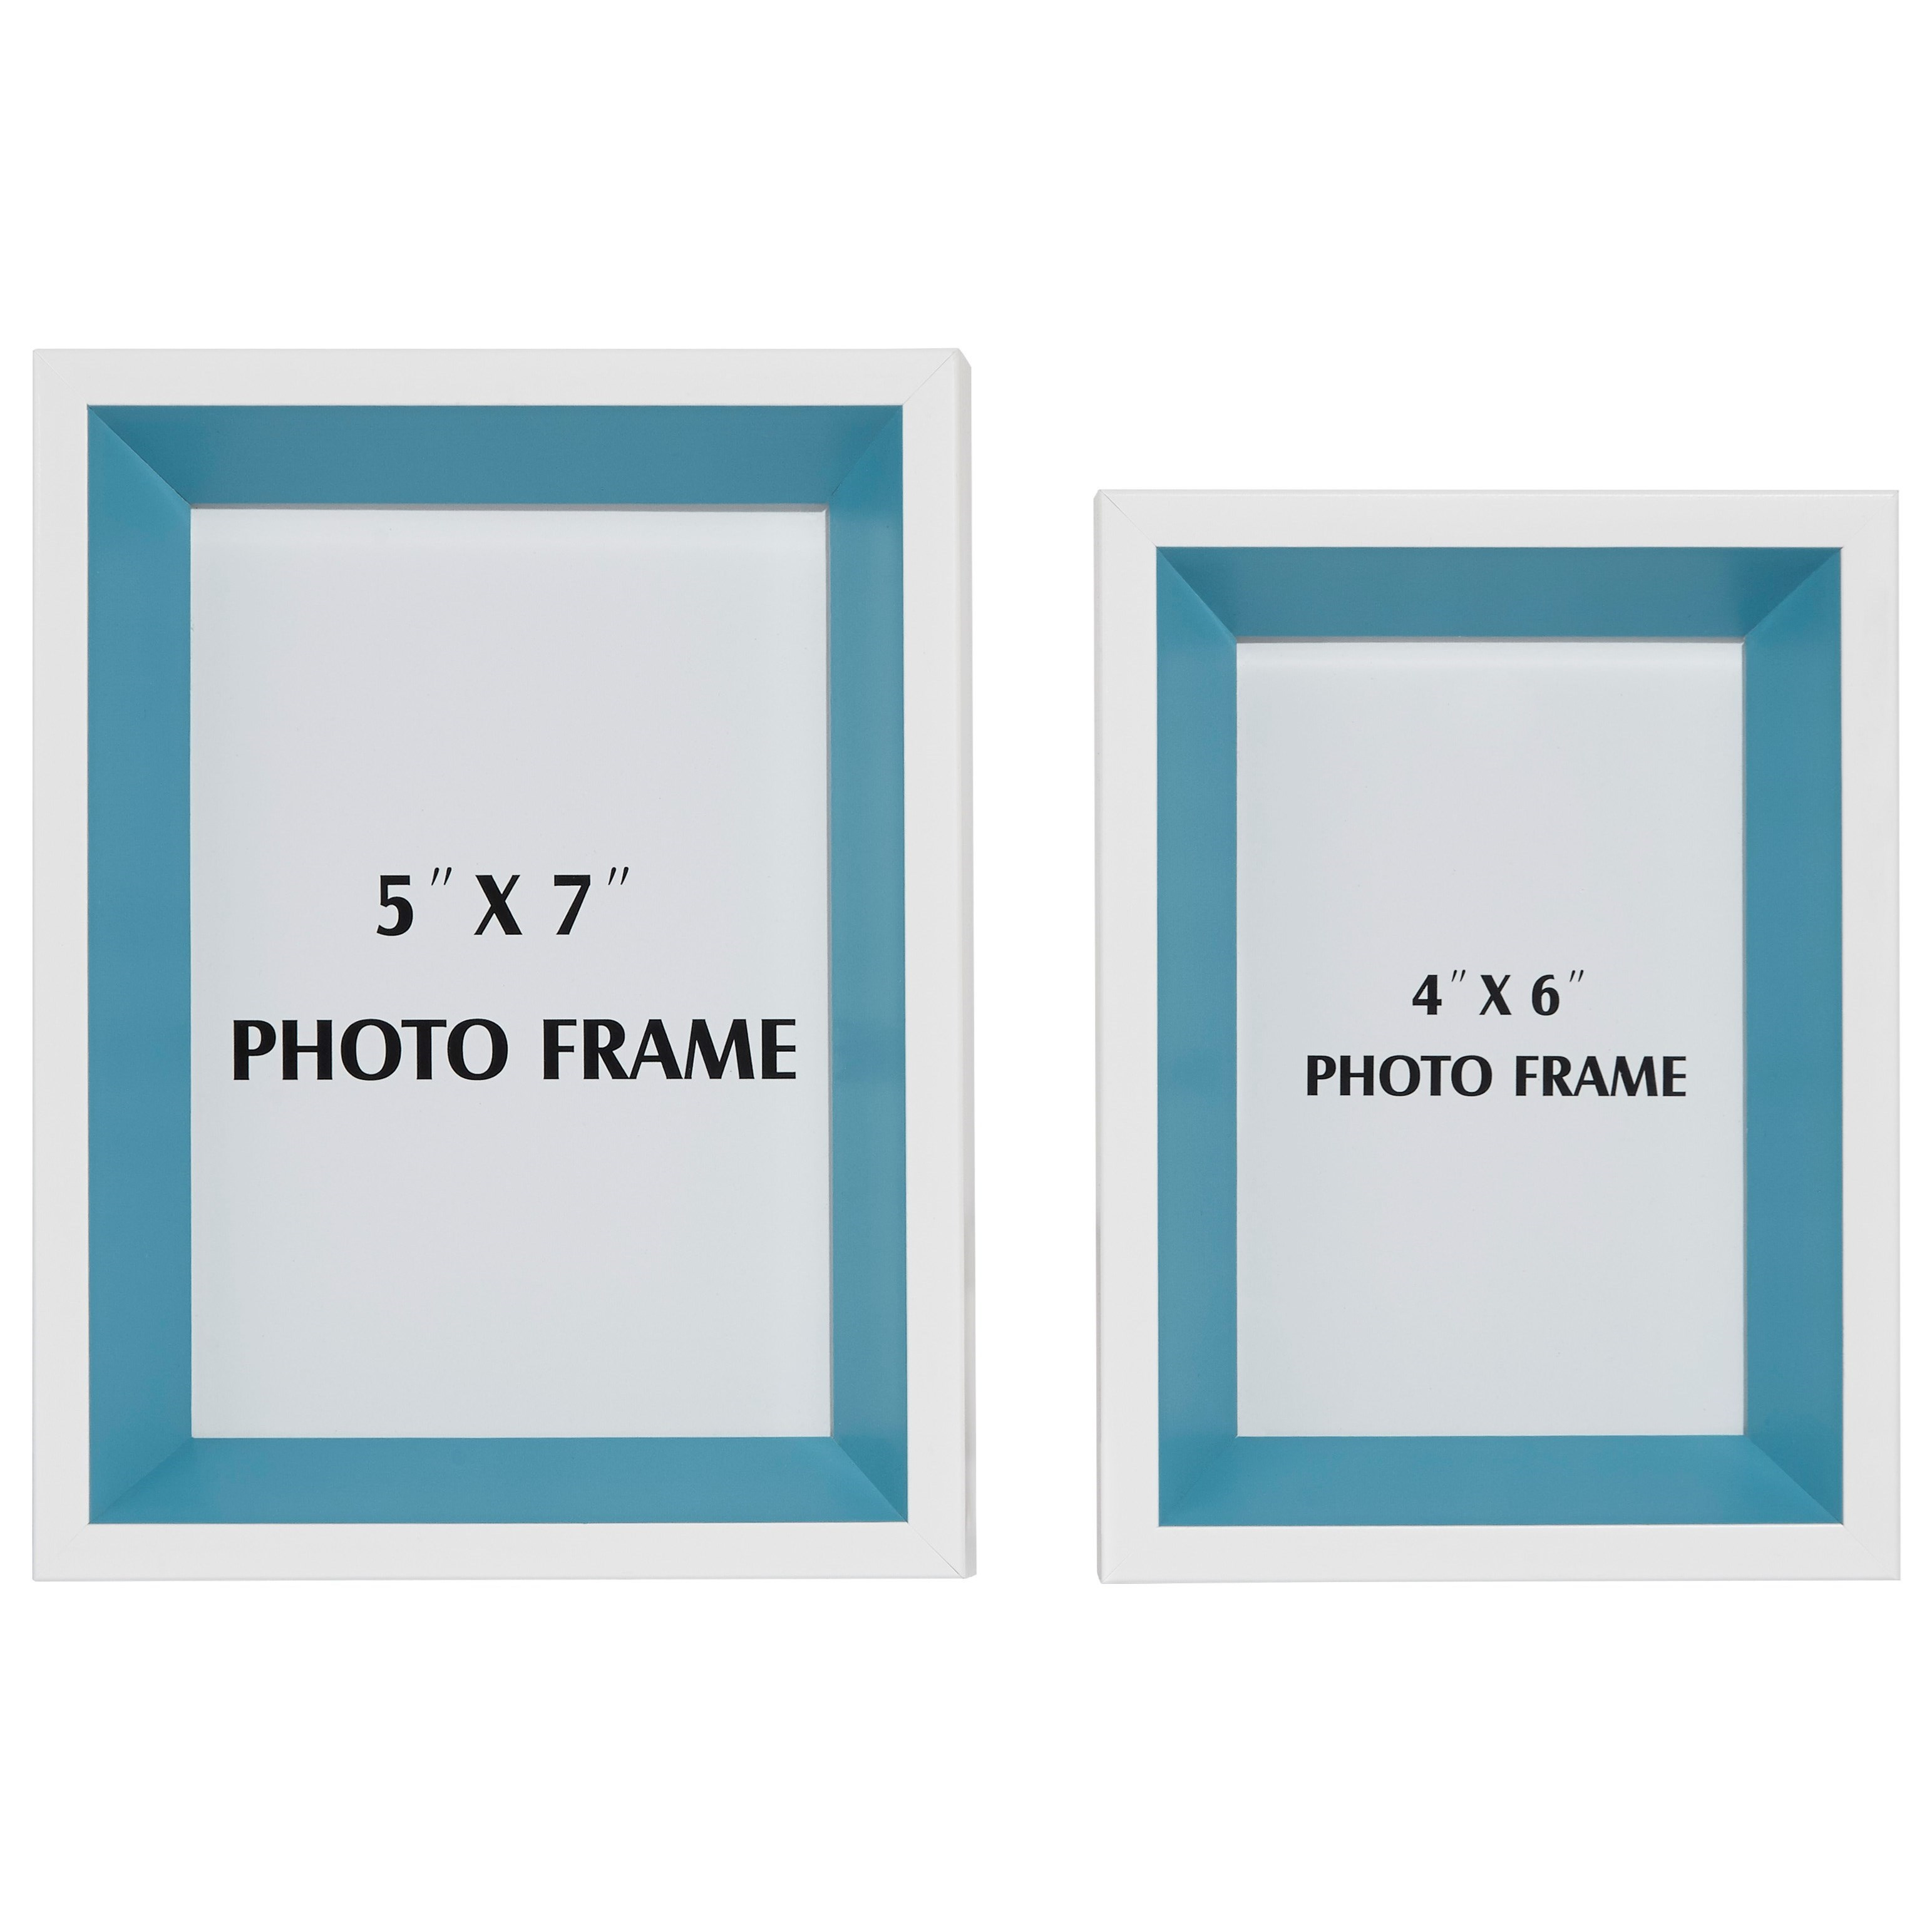 Signature Design by Ashley Accents Obie White/Blue Photo Frame (Set of 2) - Item Number: A2080005F